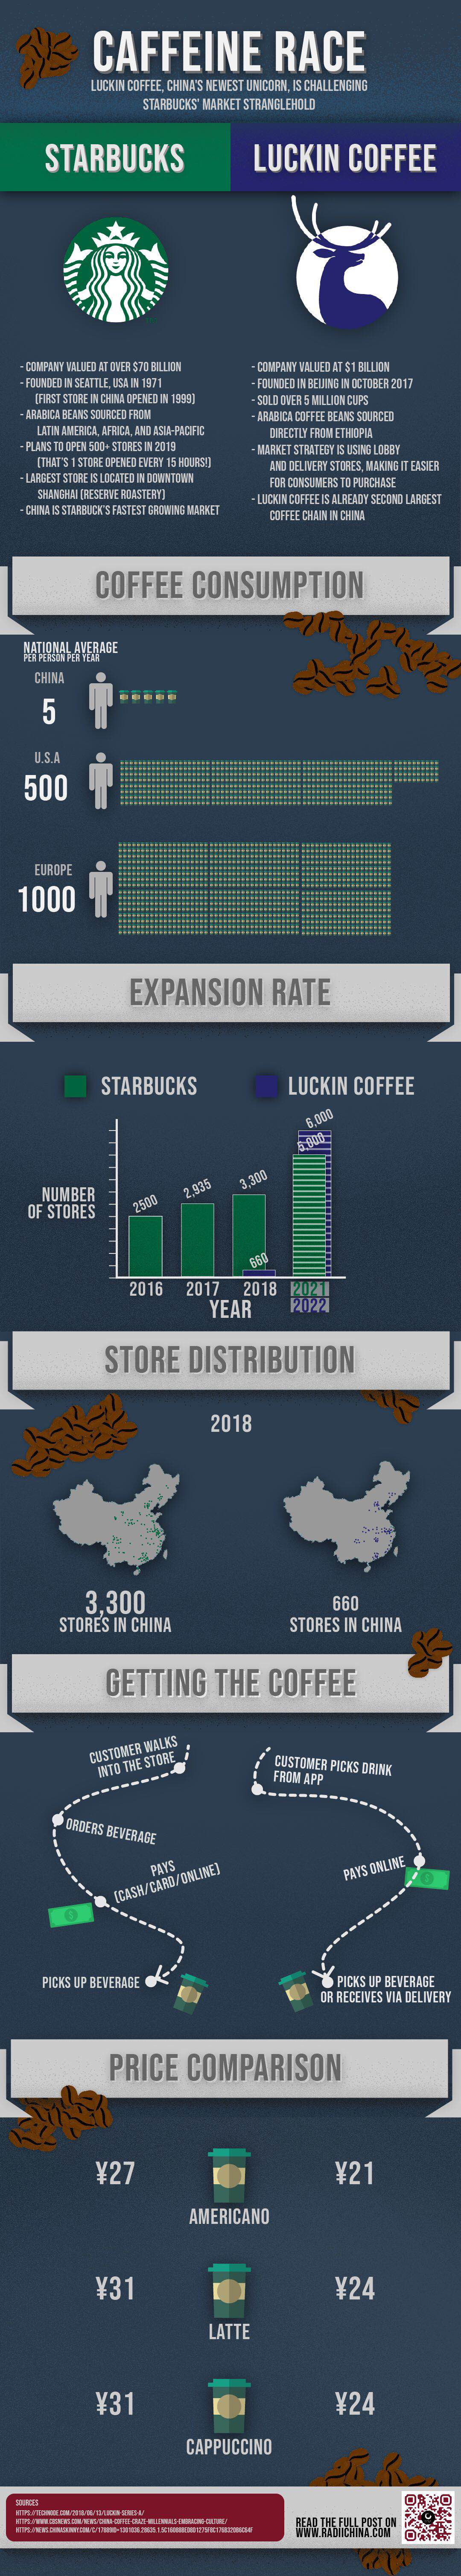 How Luckin Coffee is reforming China's coffee culture ...